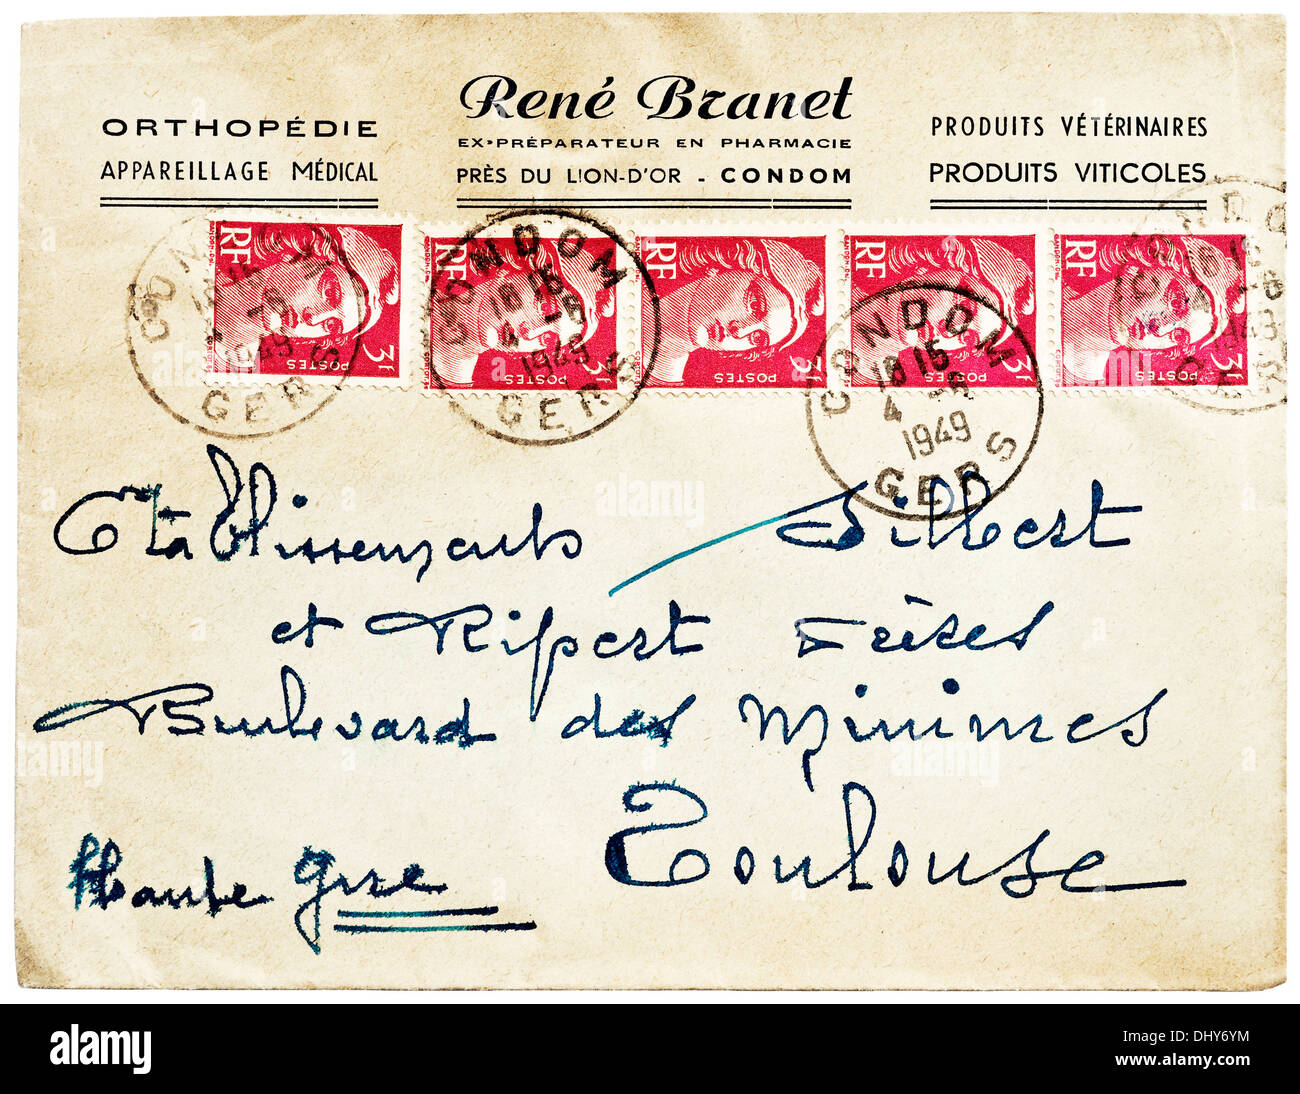 1949 French letter postmarked Condom, Gers, France with 5 Marianne de Gandon postage stamps affixed. - Stock Image